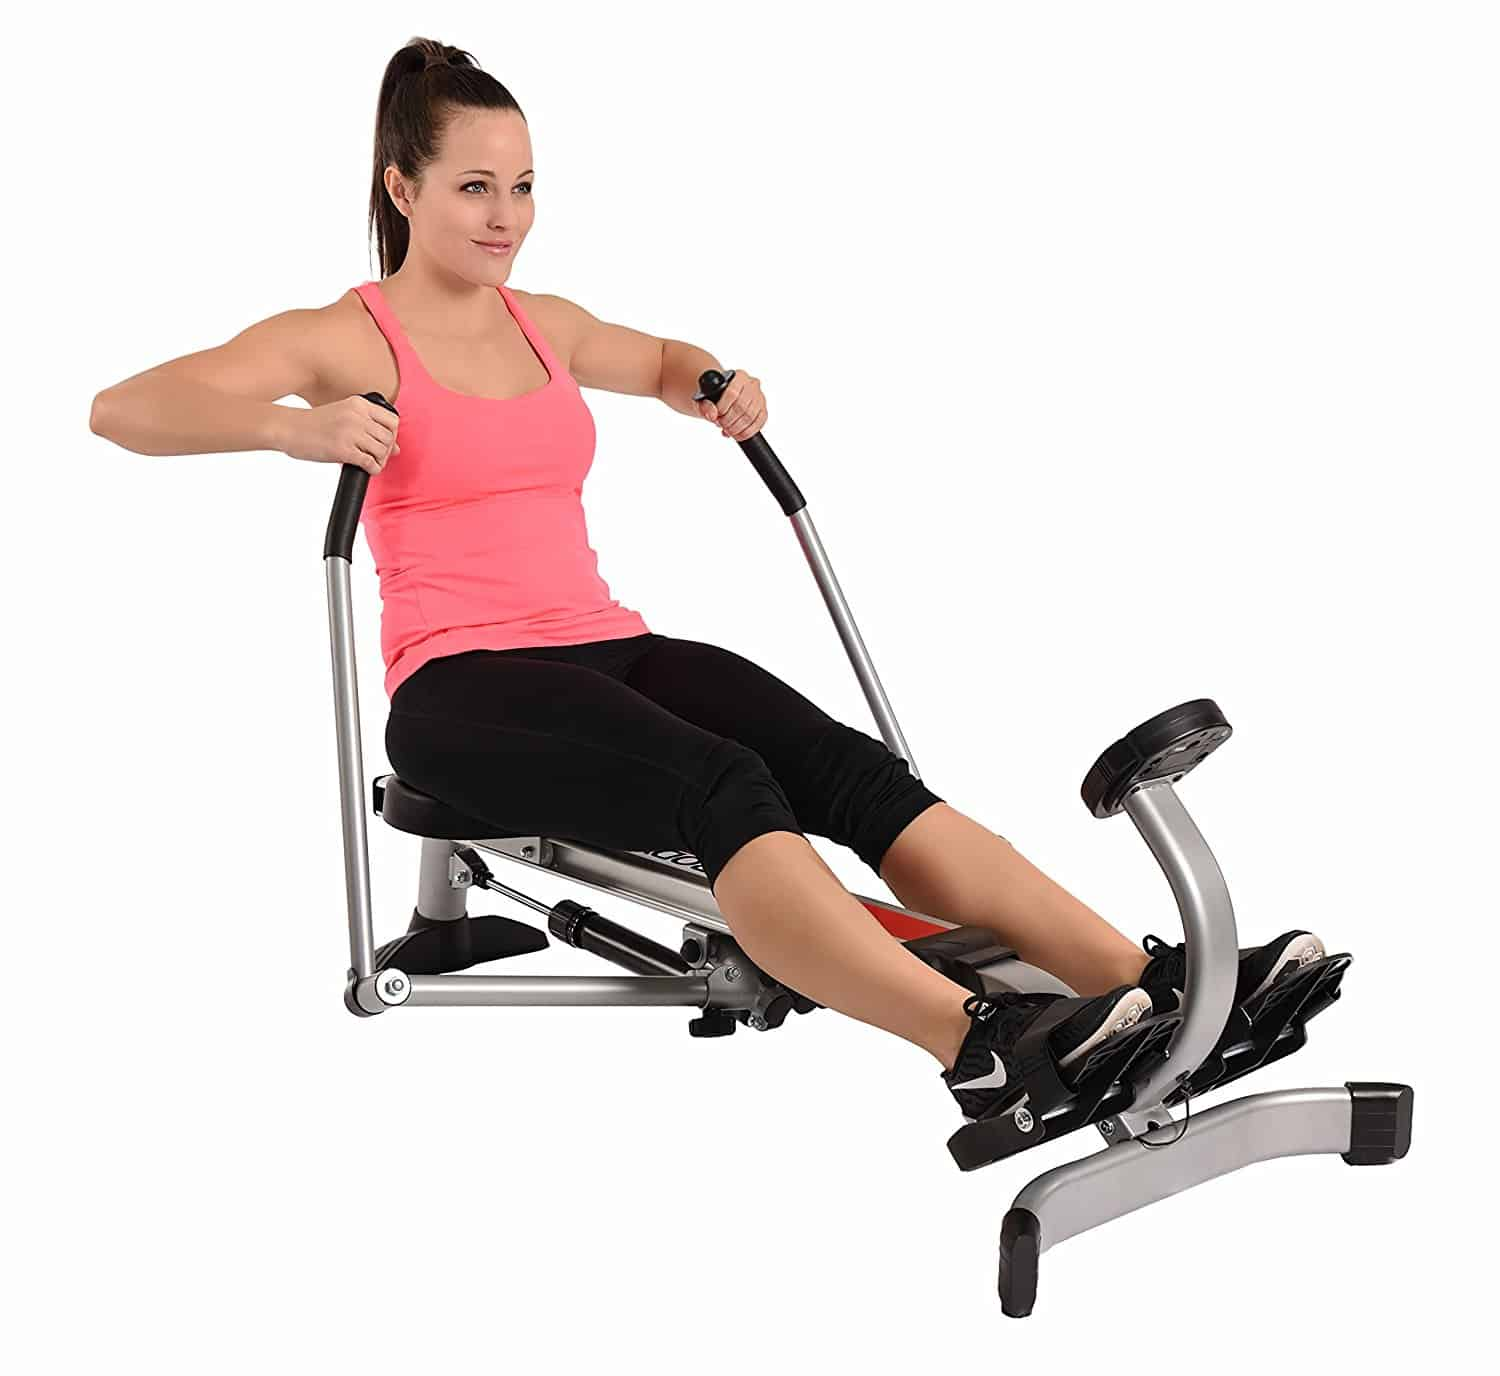 Top 10 Best Pilates Chairs For Home Exercises In 2018: Best Rowing Machines Reviewed And Compared In 2018